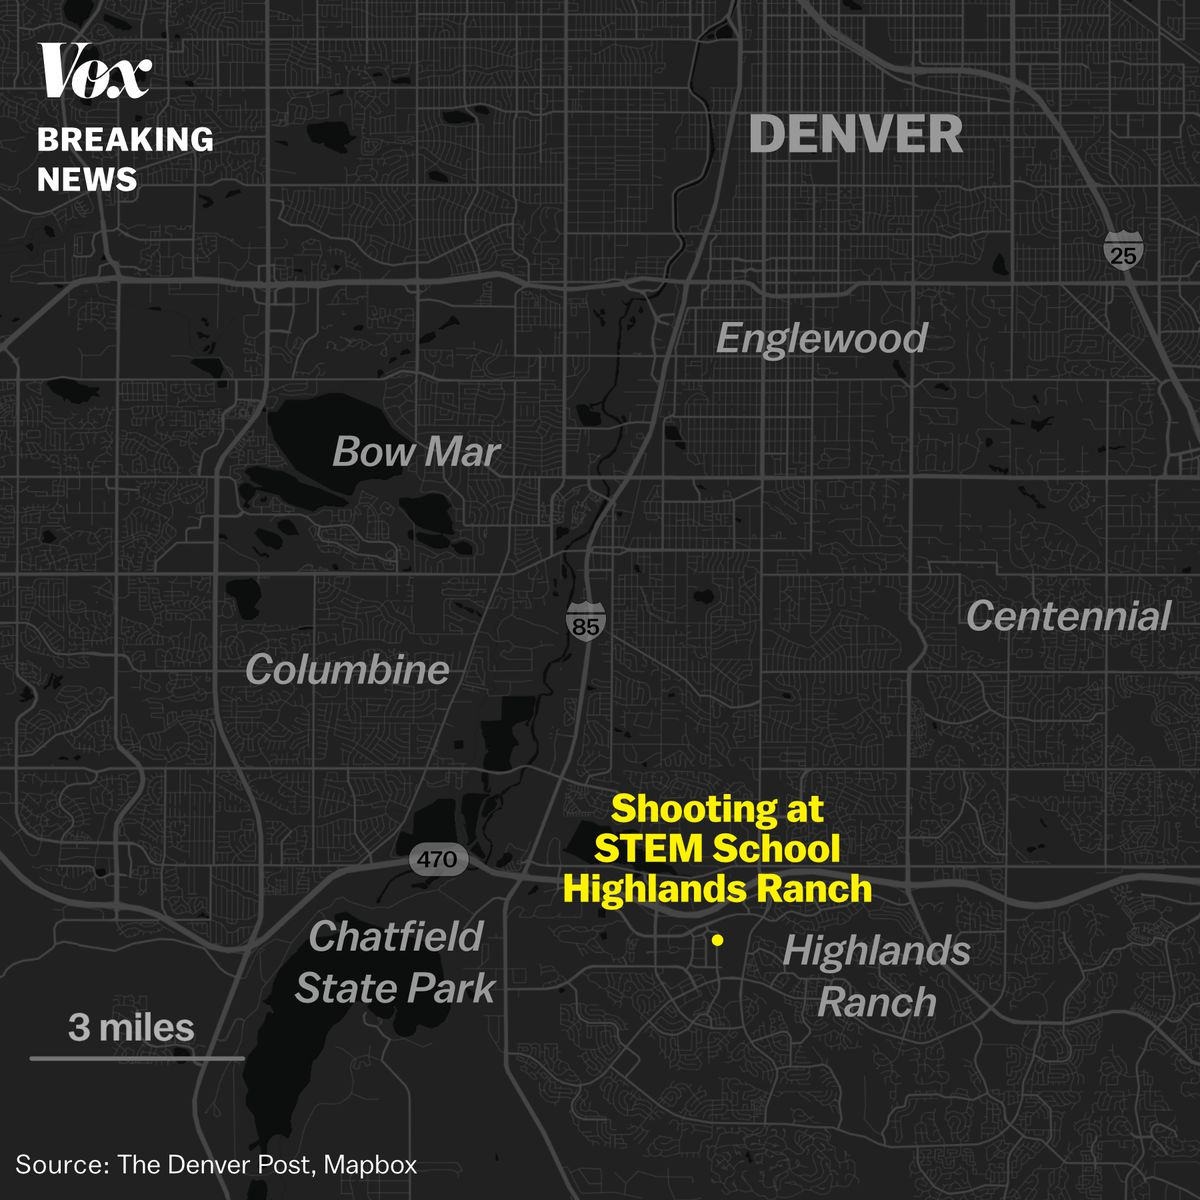 Denver Usa Shooting: Colorado Shooting At STEM School Highlands Ranch: What We